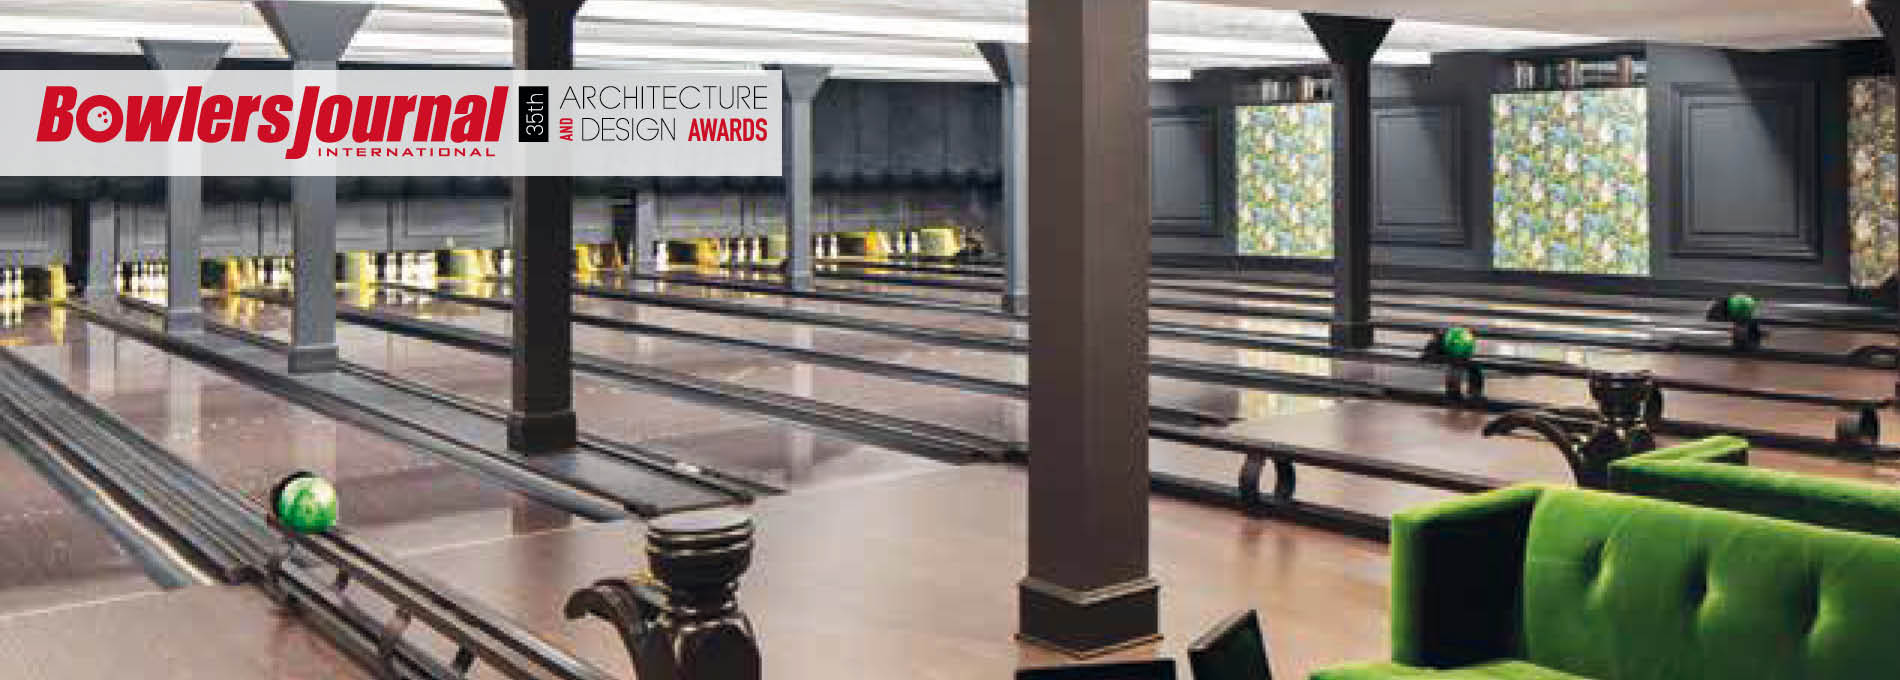 QubicaAMF bowling 35 architectual design awards home banner the lanes at the howard